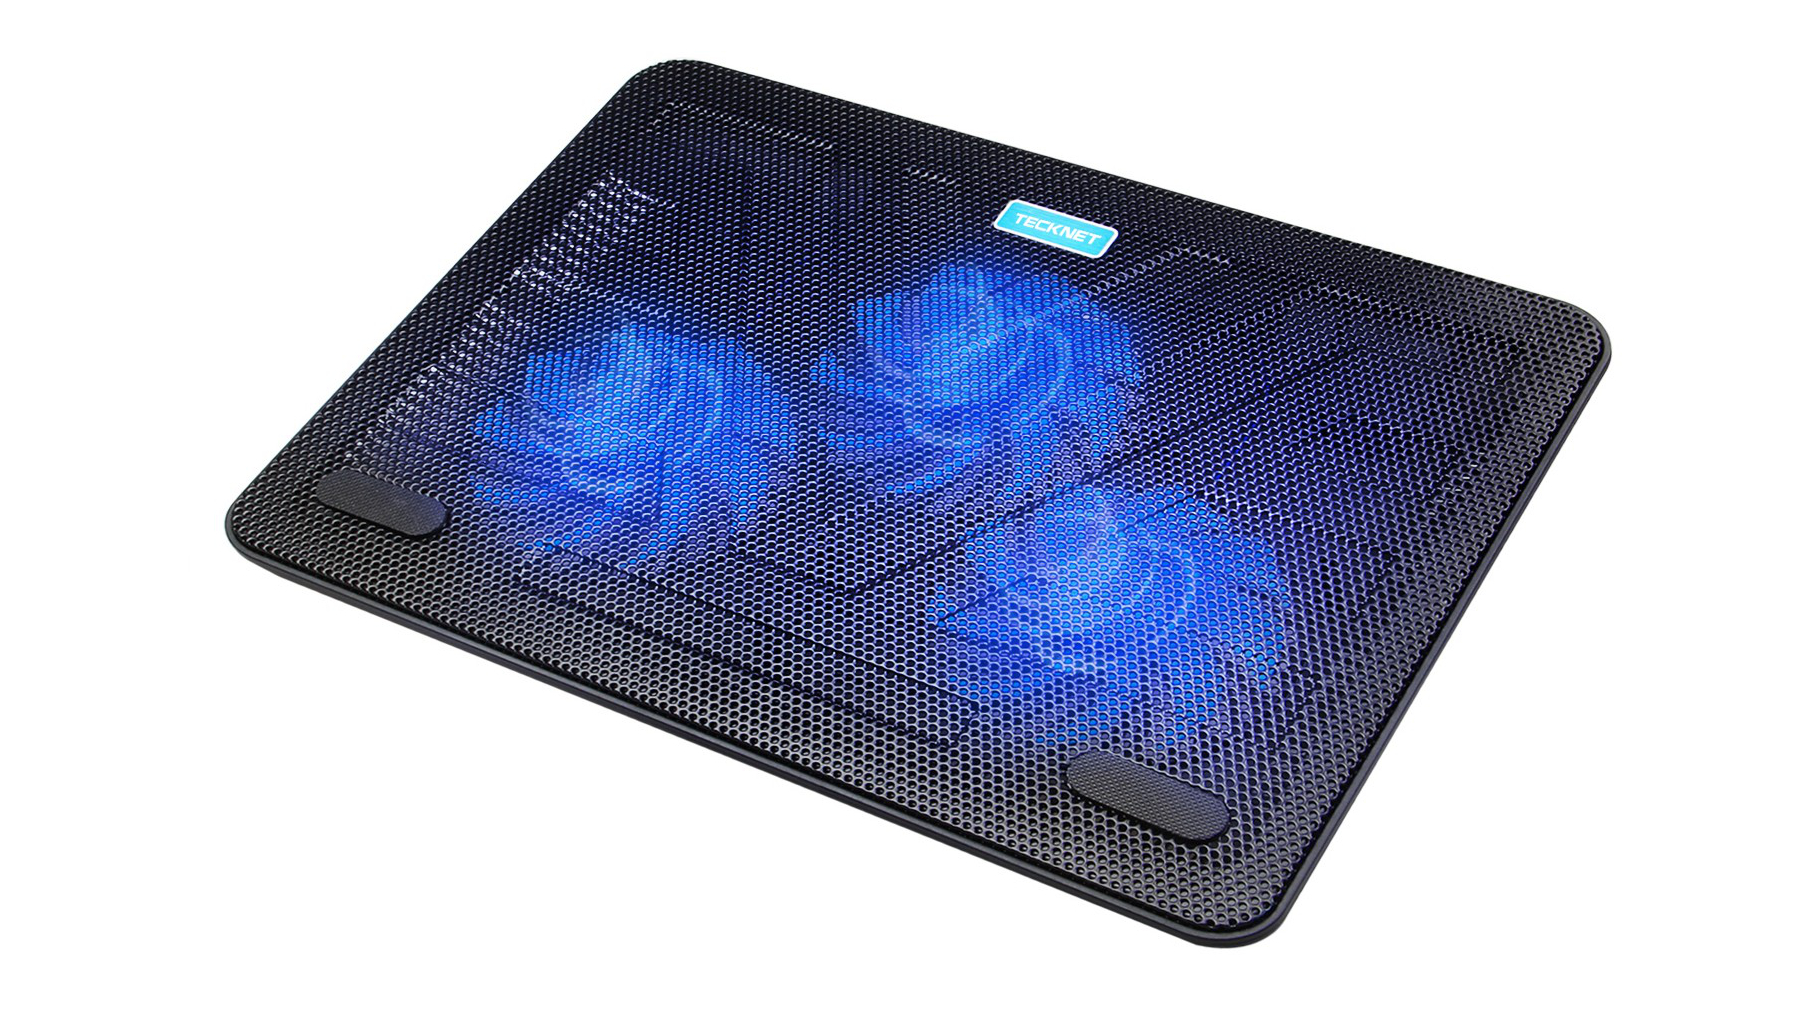 TeckNet N8 Laptop Cooling Pad on a white background.